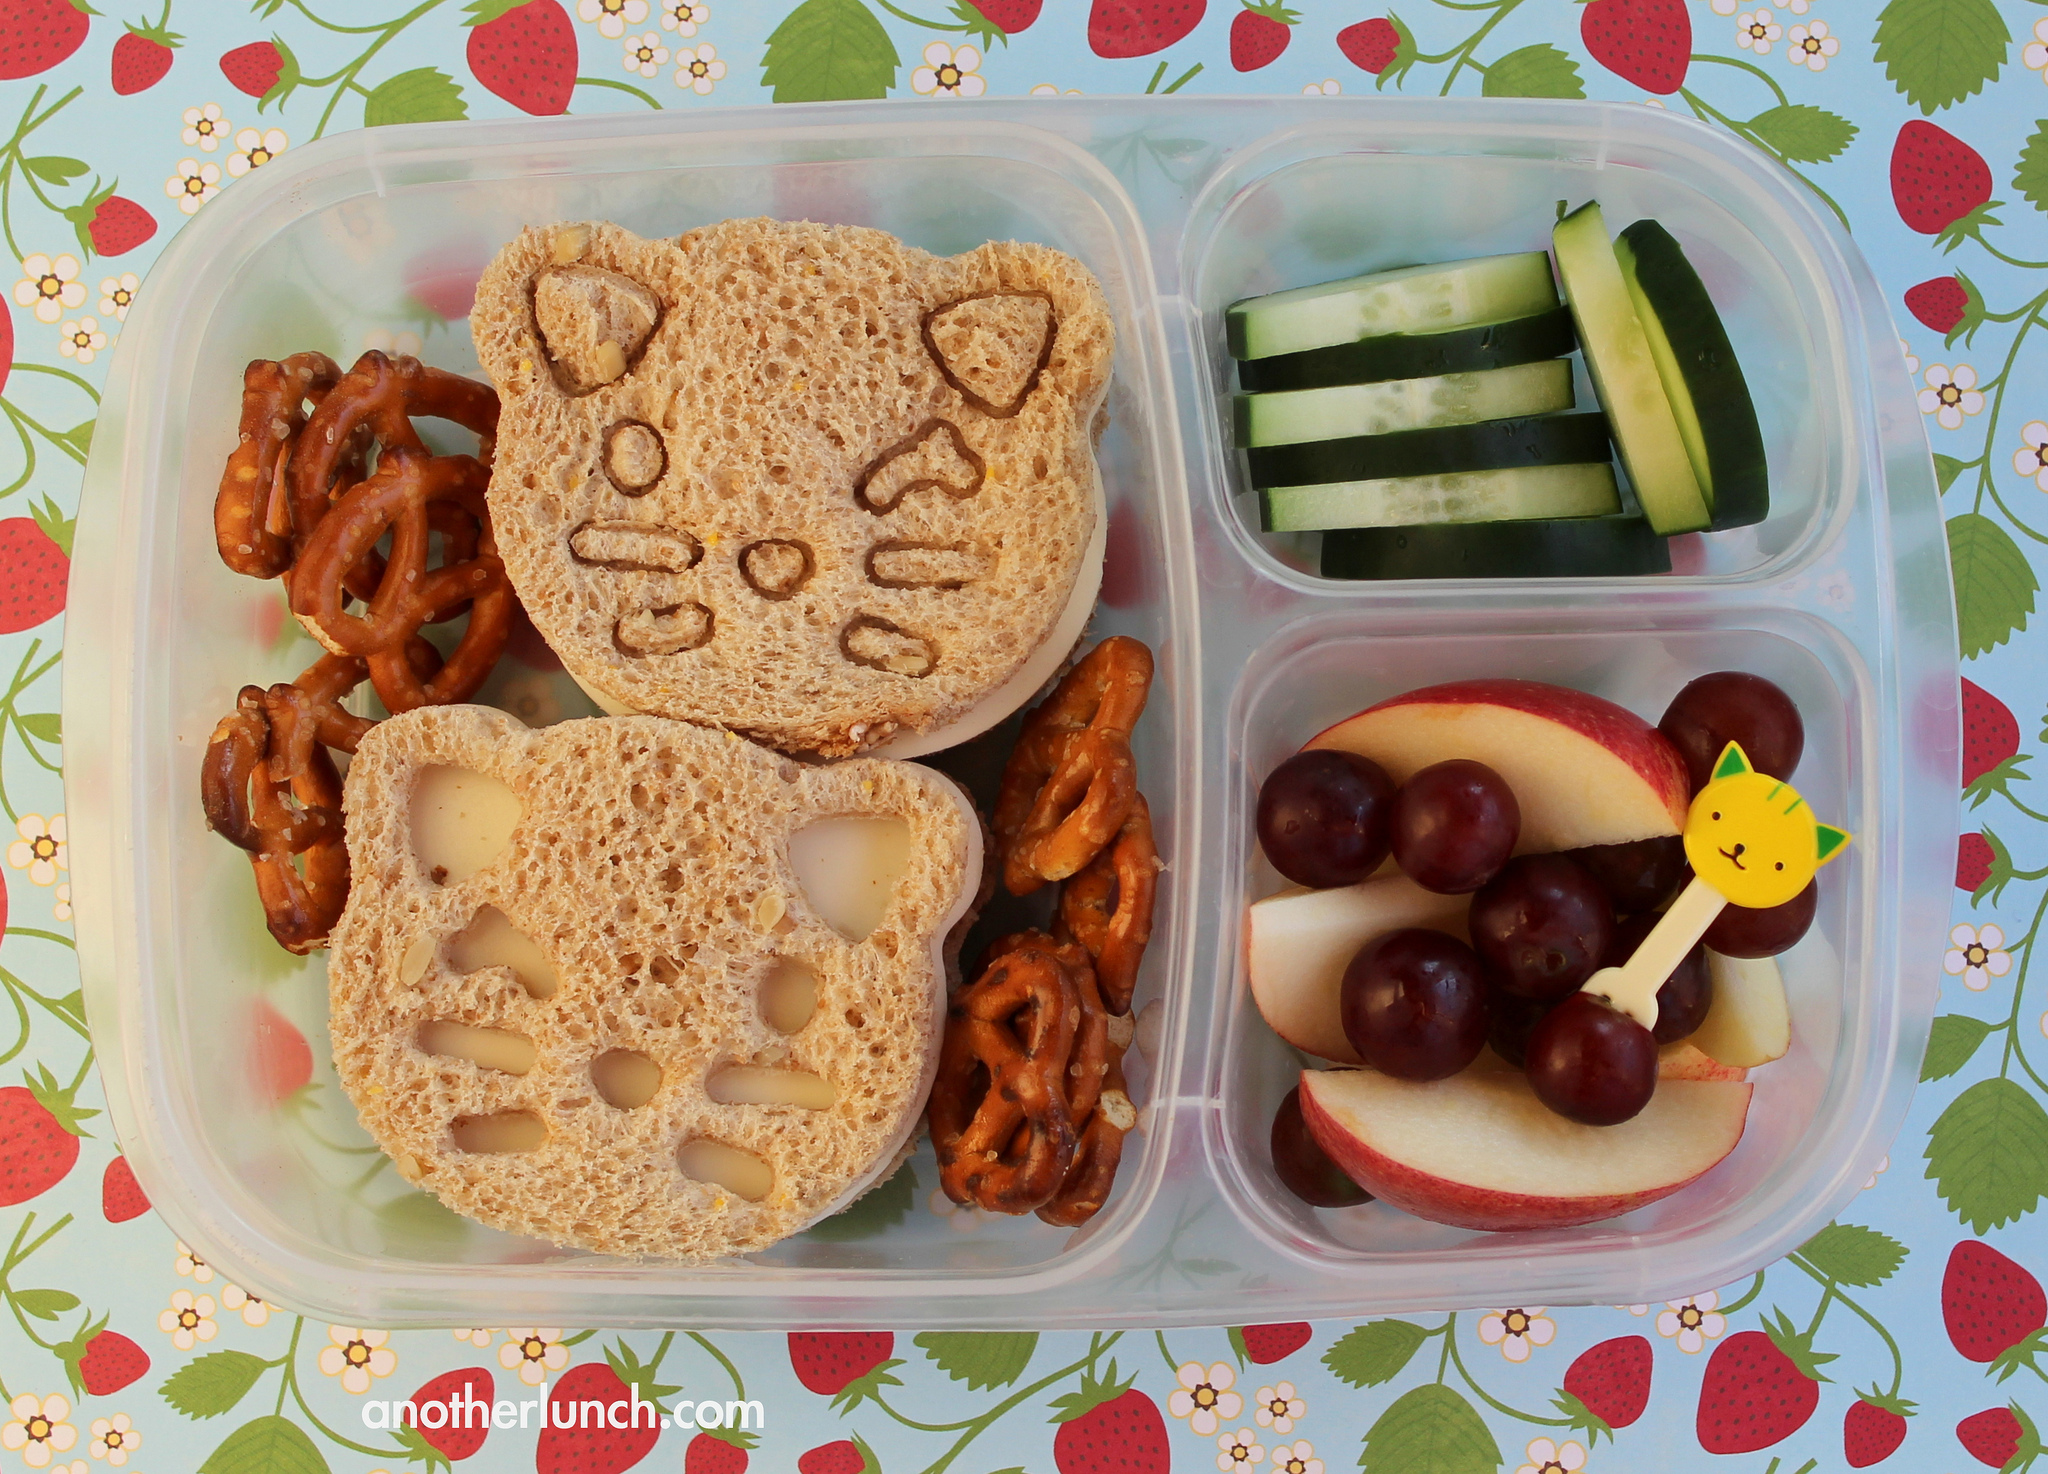 Cute Kitten Bento Easylunchboxes lunch By Melissa on Flickr